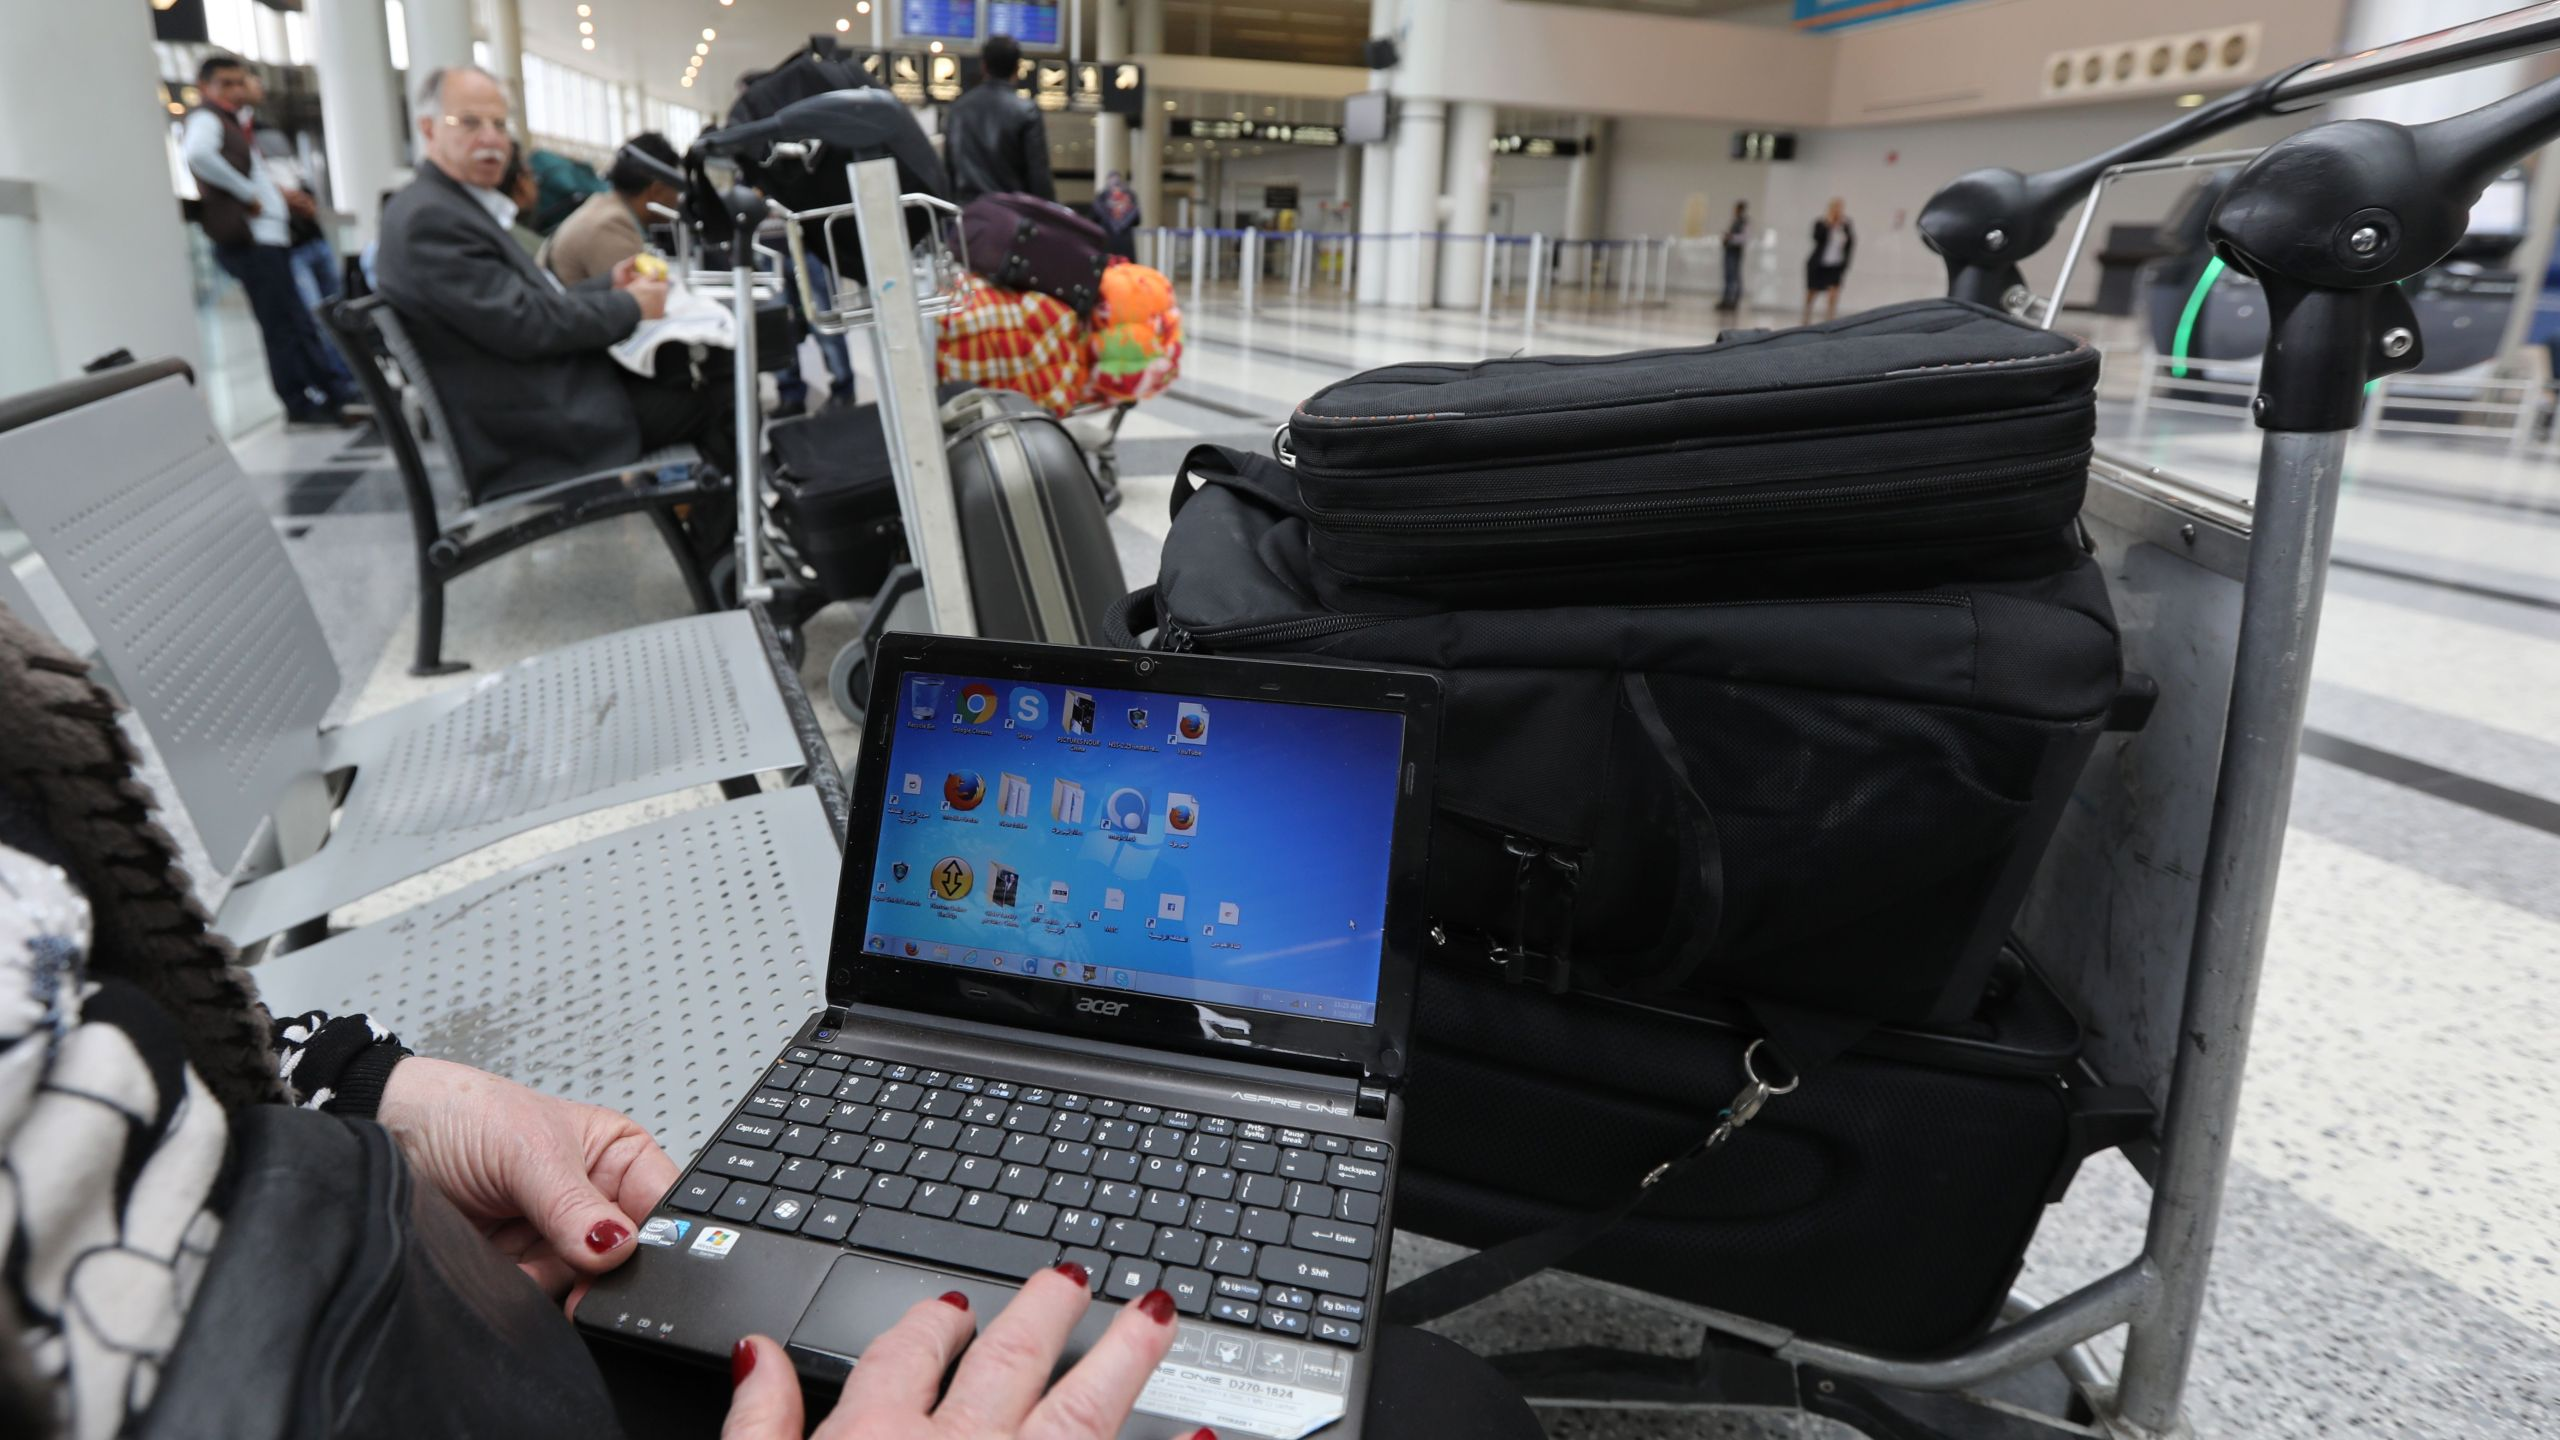 A Syrian woman travelling to the U.S. opens her laptop before checking in at Beirut international airport in Lebanon on March 22, 2017.(Credit: Anwar Amro / AFP / Getty Images)